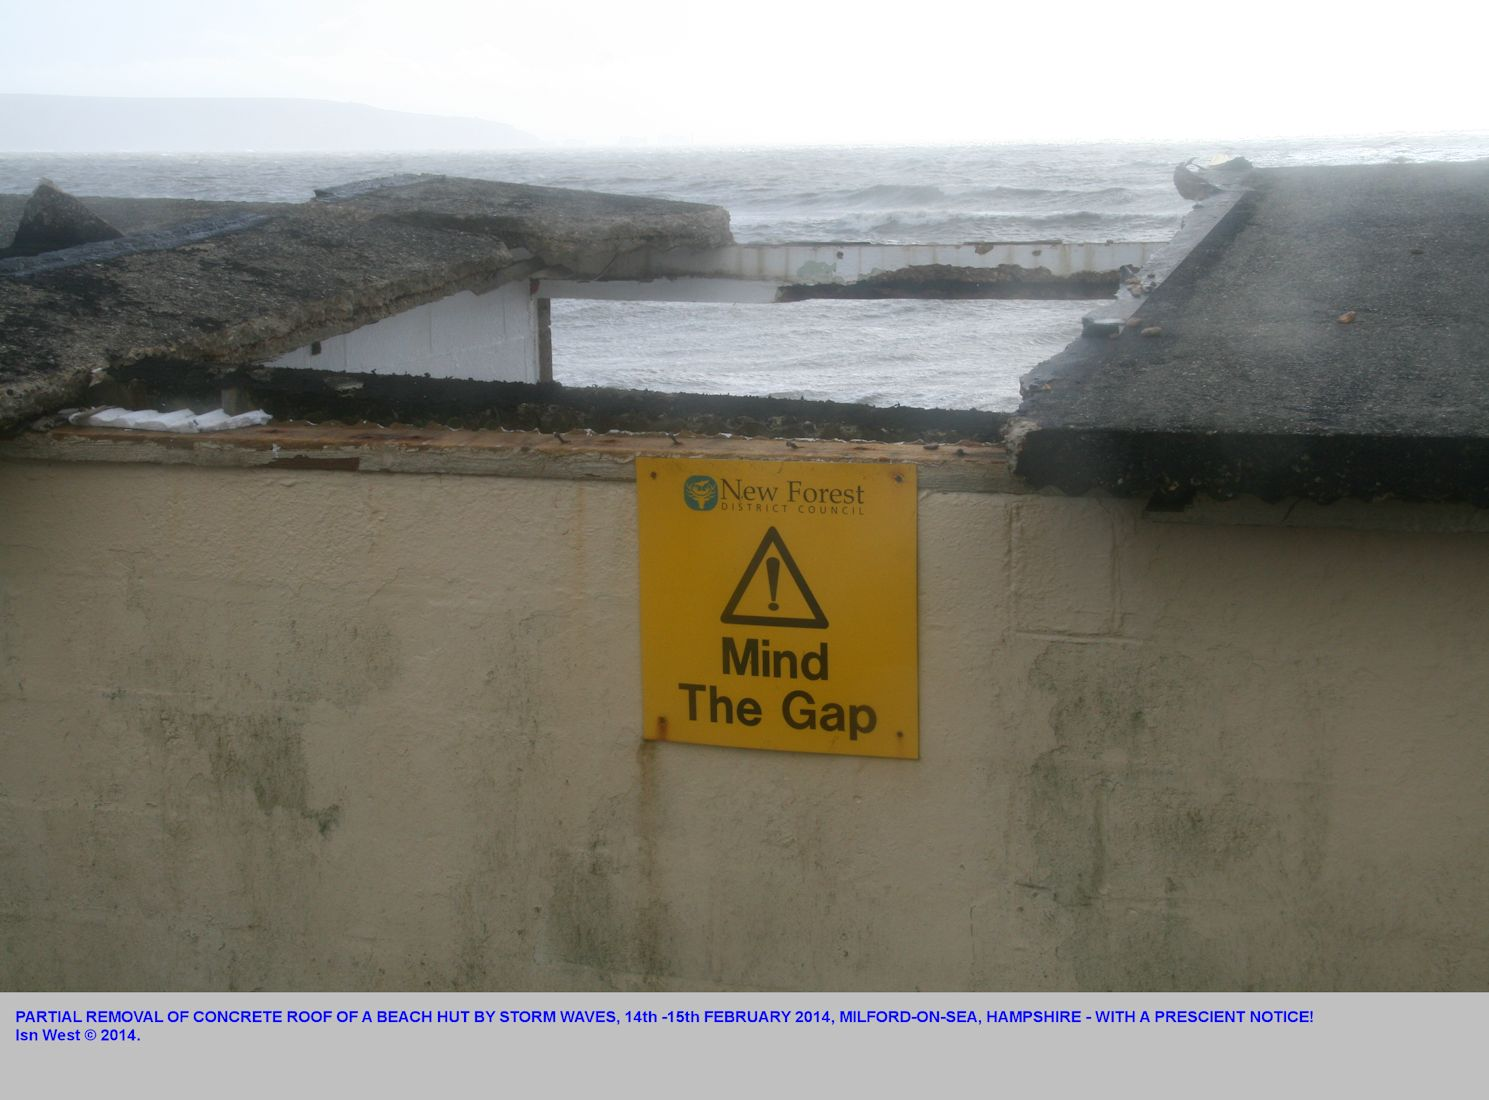 A prescient notice on a concrete beach hut damaged by storm waves, Milford-on-Sea, near Hurst Spit, Hampshire, 15th February 2014